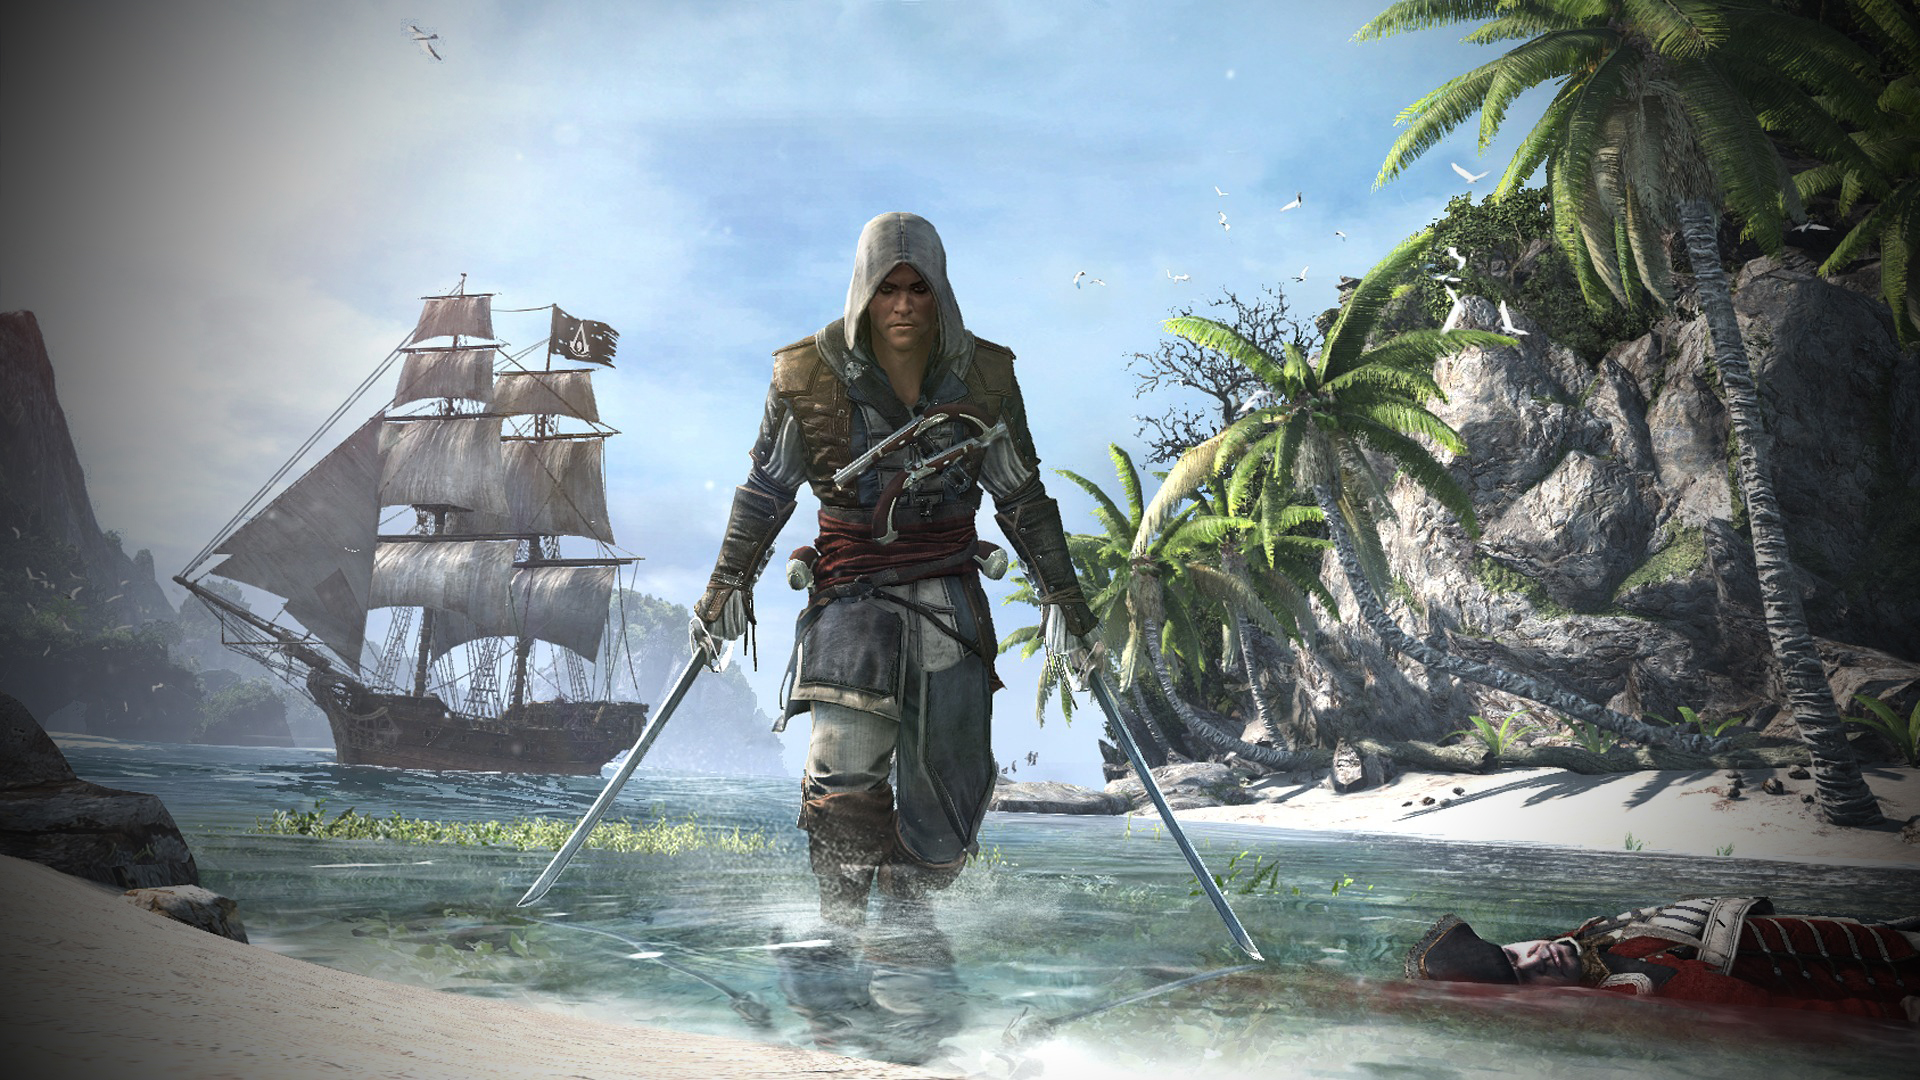 Assassin's Creed 4 PlayStation Exclusive Missions Detailed ...